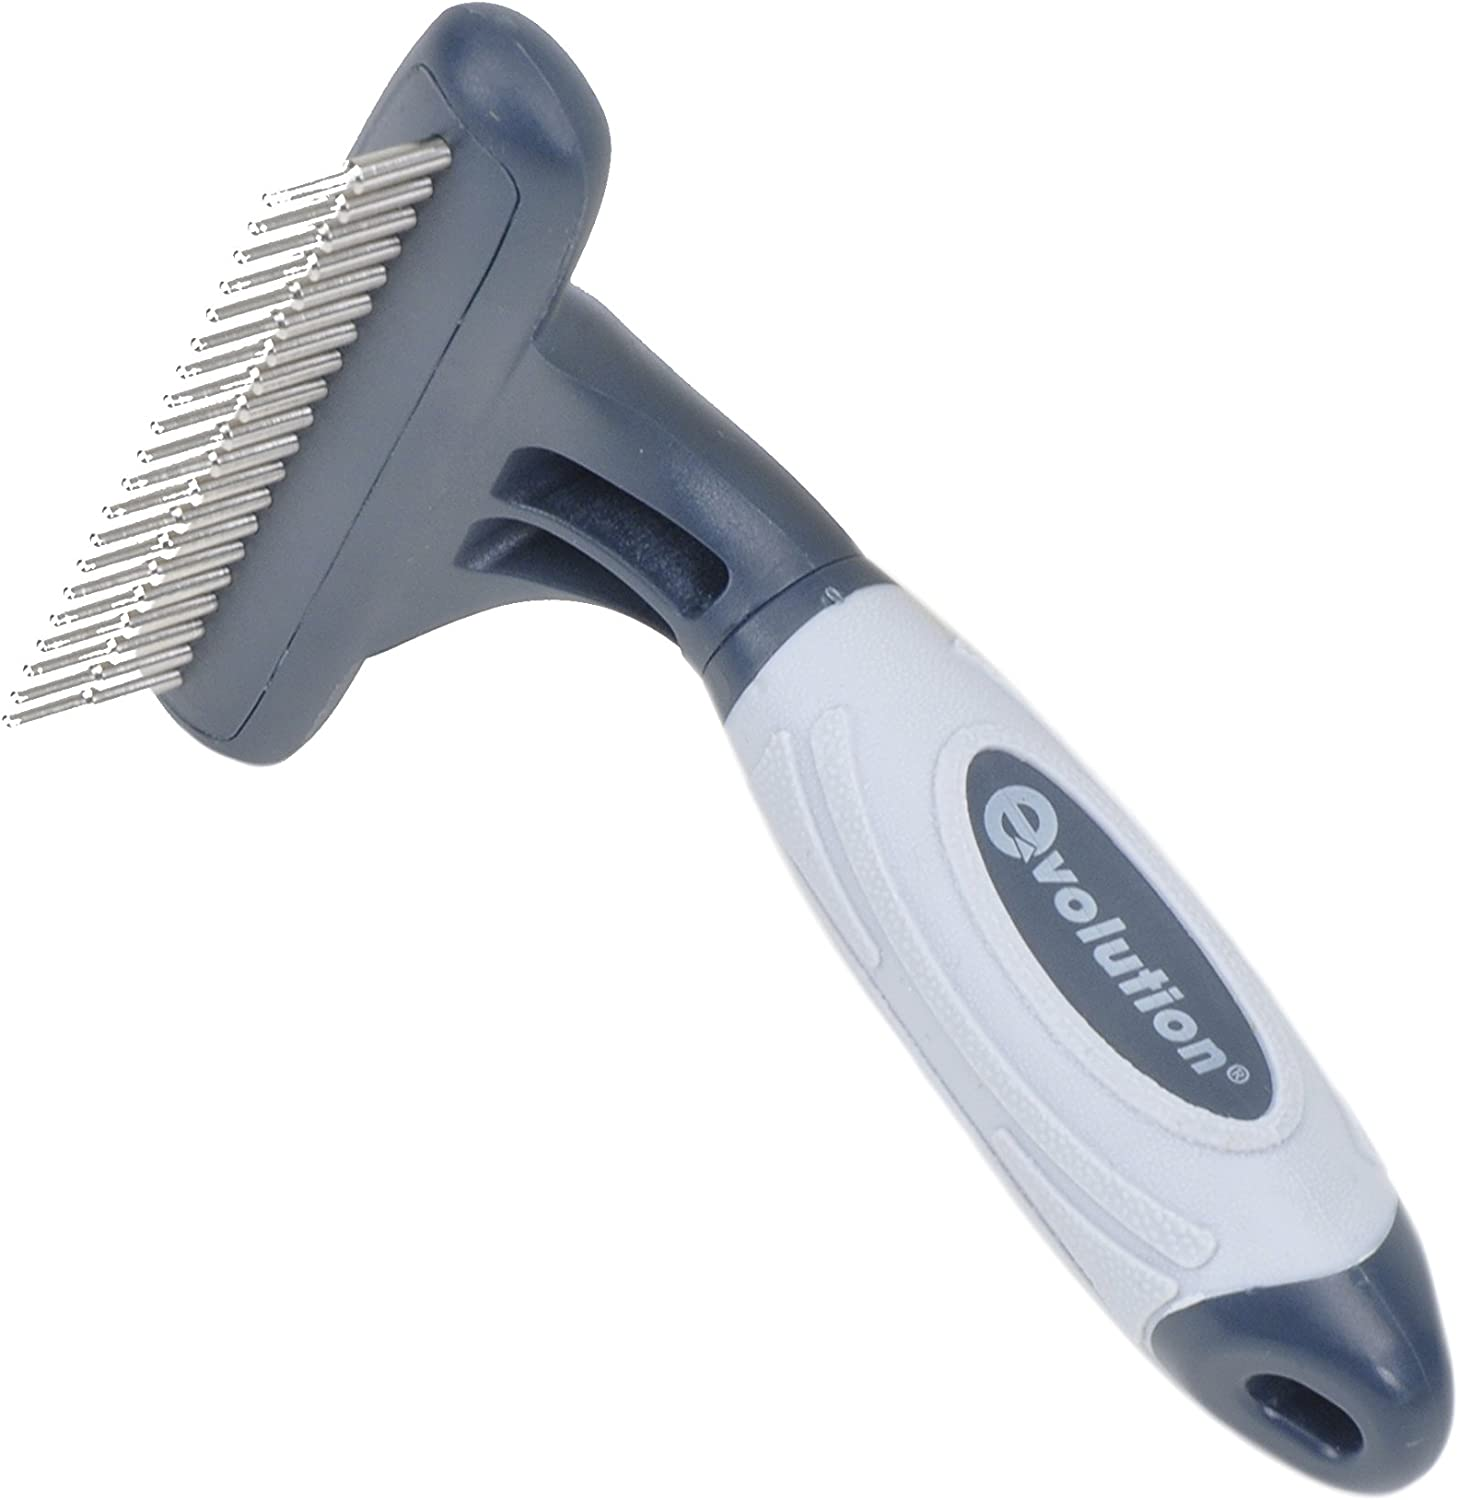 New Evolution Dog Cat ROTATING PINS SHEDDING COMB Gentle Grooming